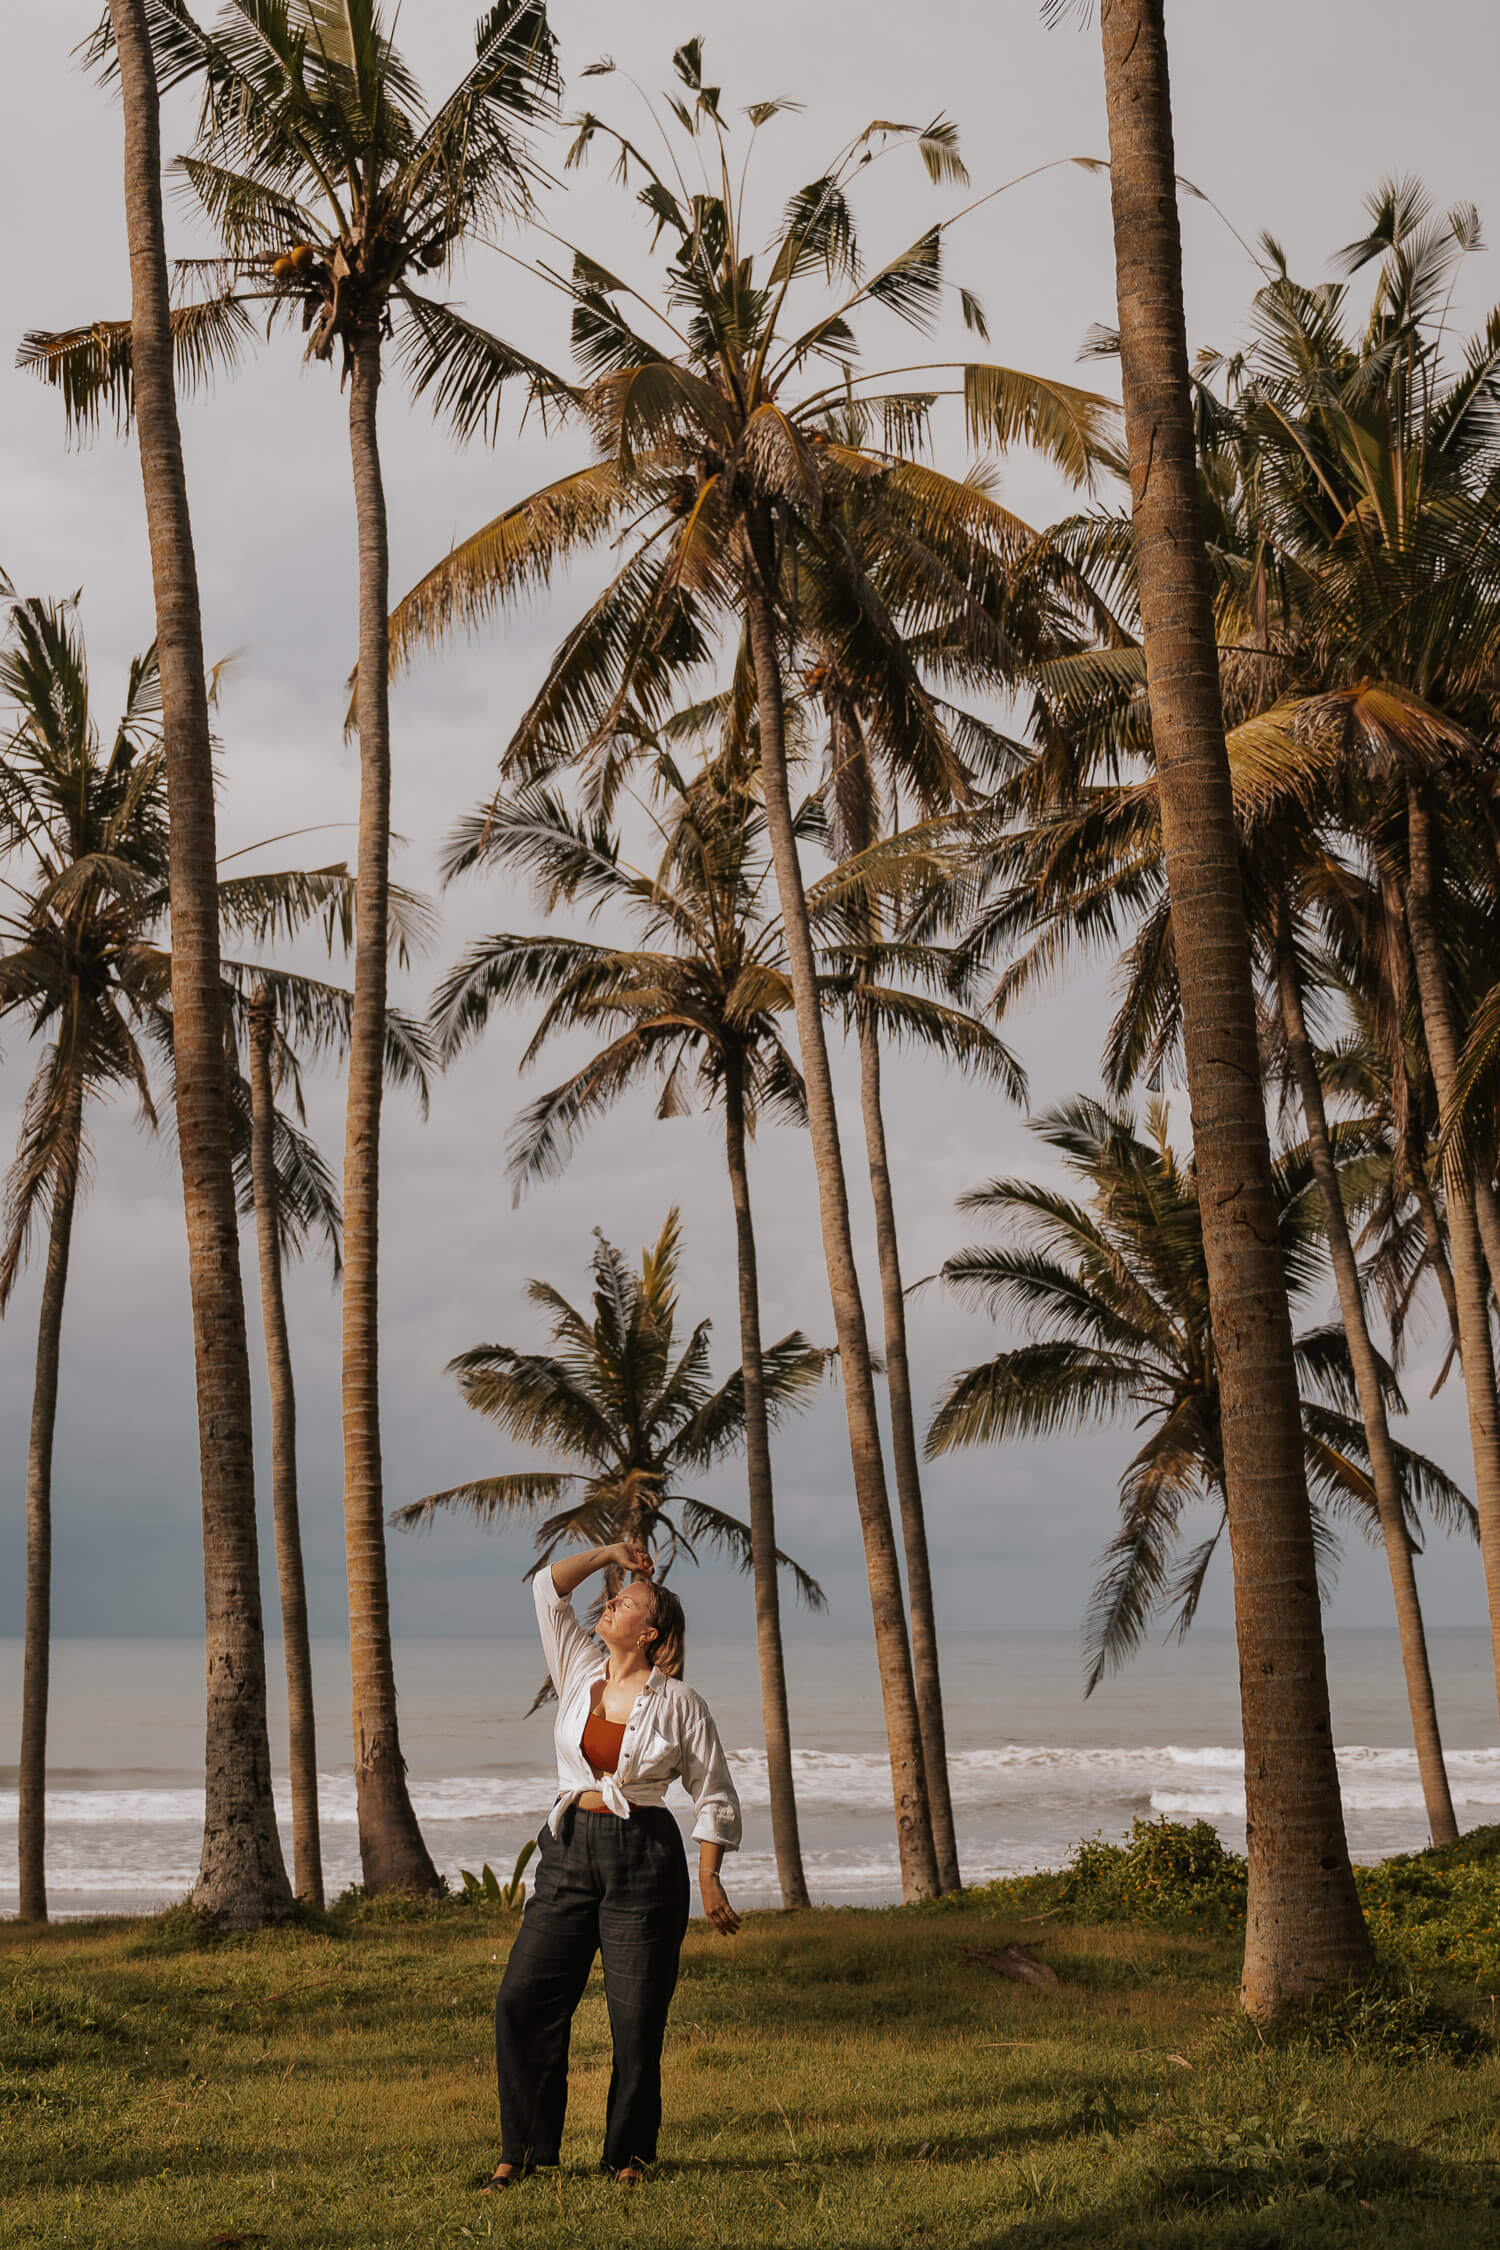 Pasut Beach Most instagrammable places in Bali